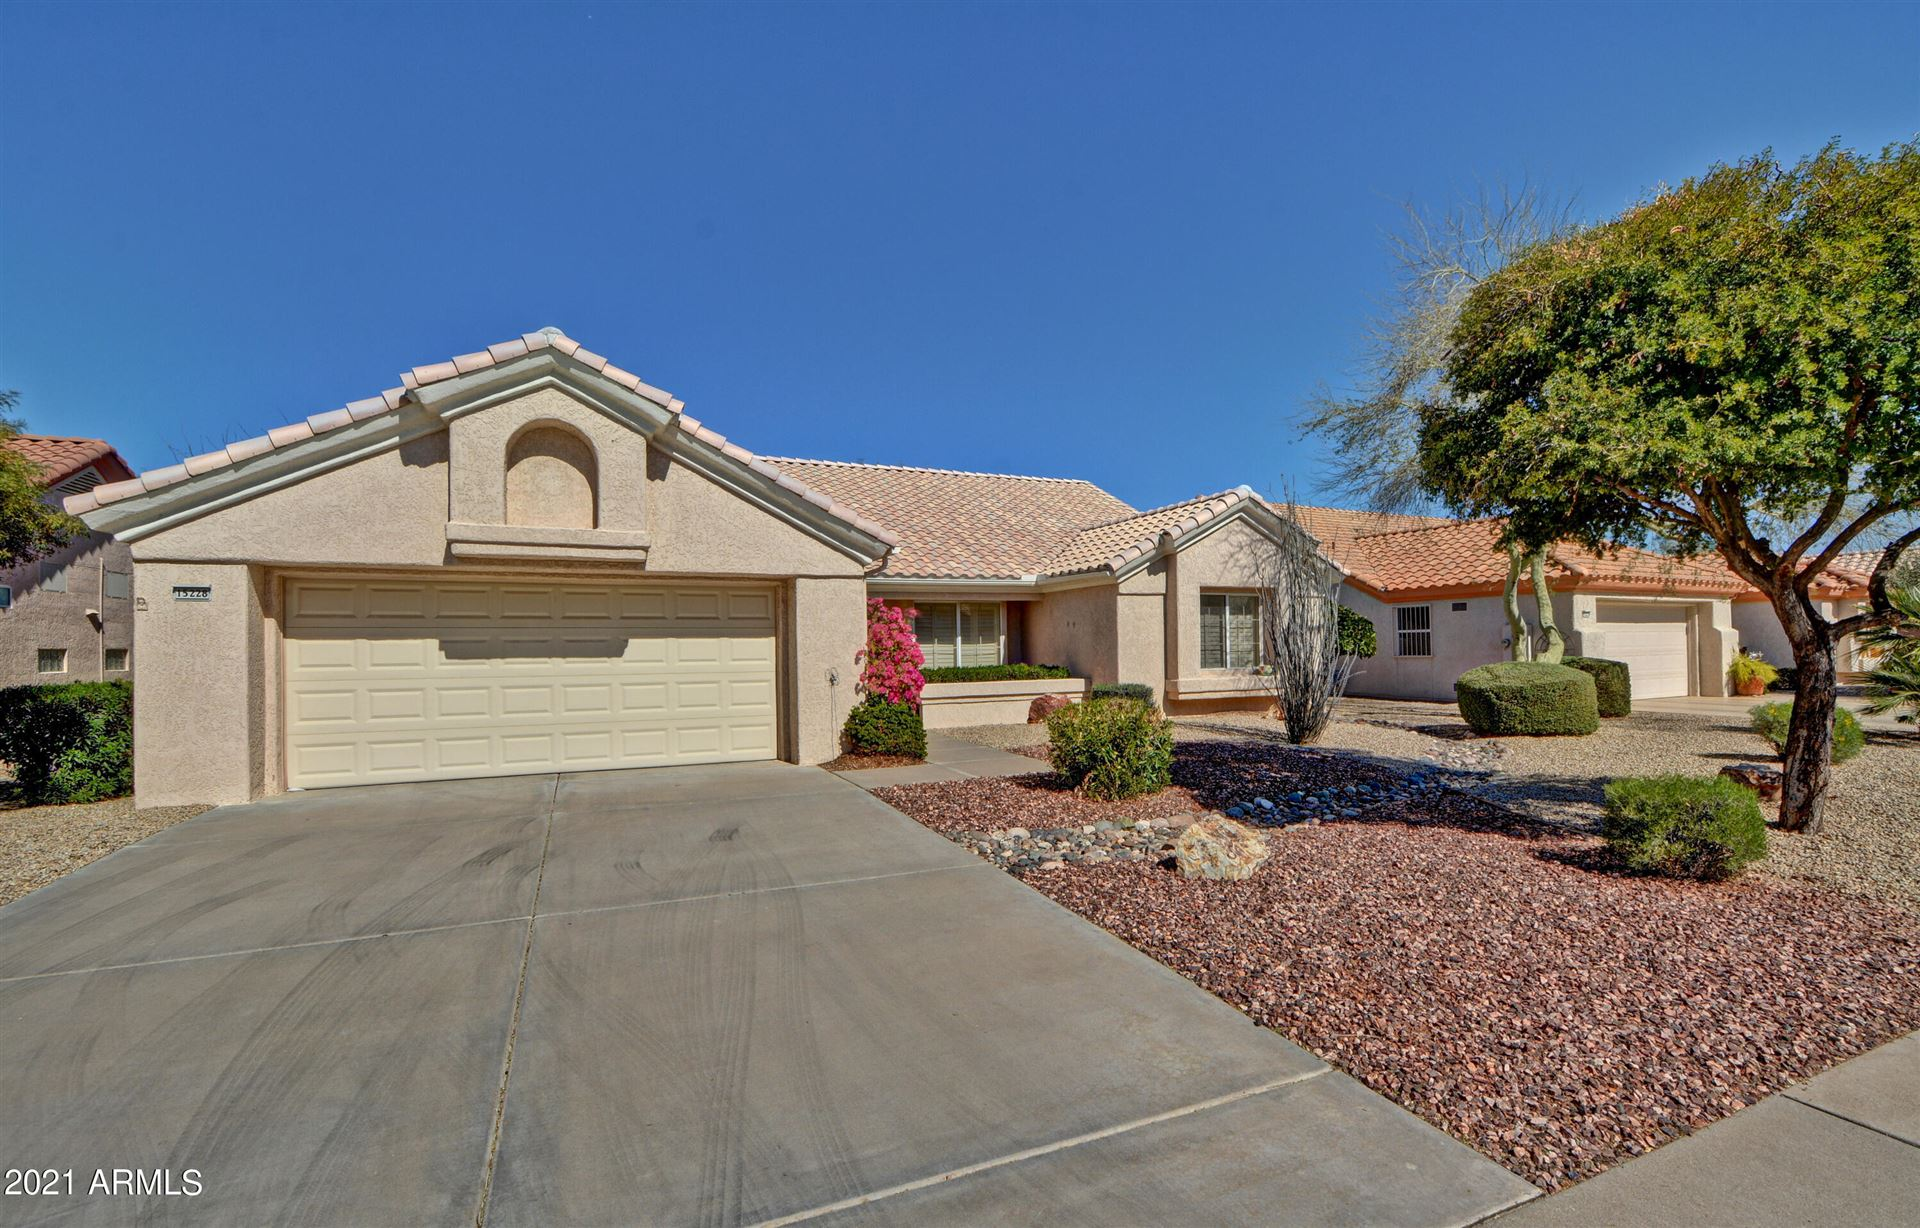 Photo of 15228 W BLUE VERDE Drive, Sun City West, AZ 85375 (MLS # 6197868)